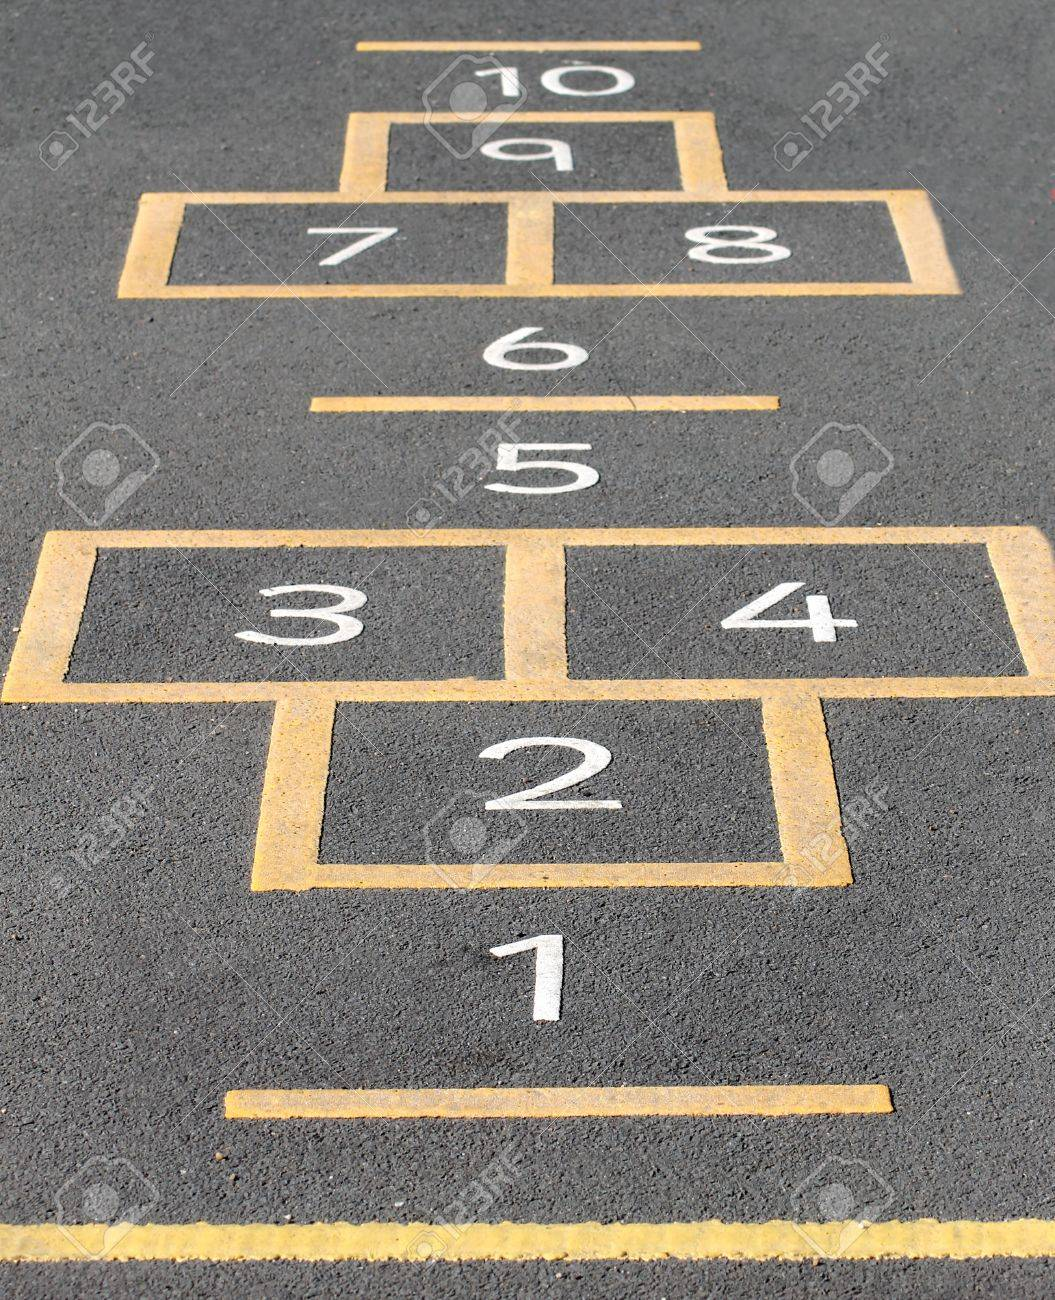 Hopscotch game painted on a school playground. - 19427722